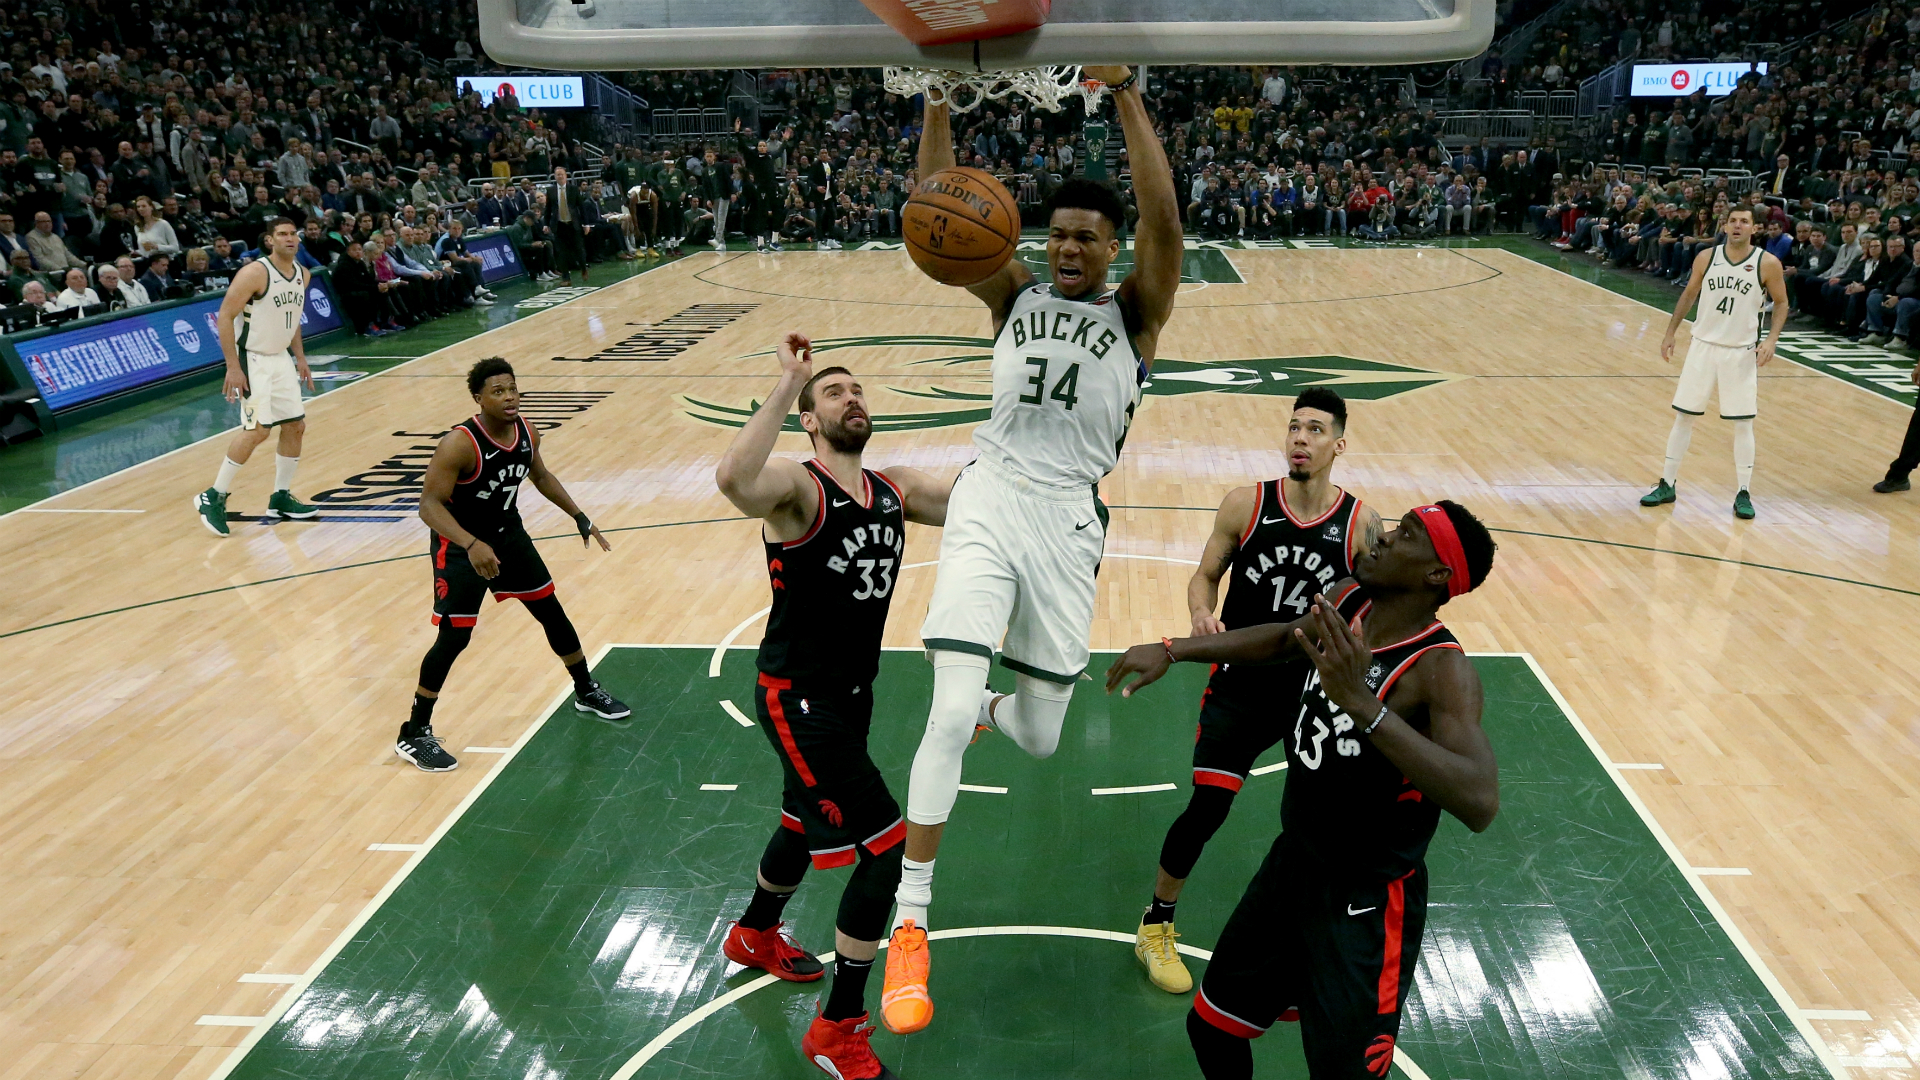 My team-mates are looking at me – Giannis revels in leading role